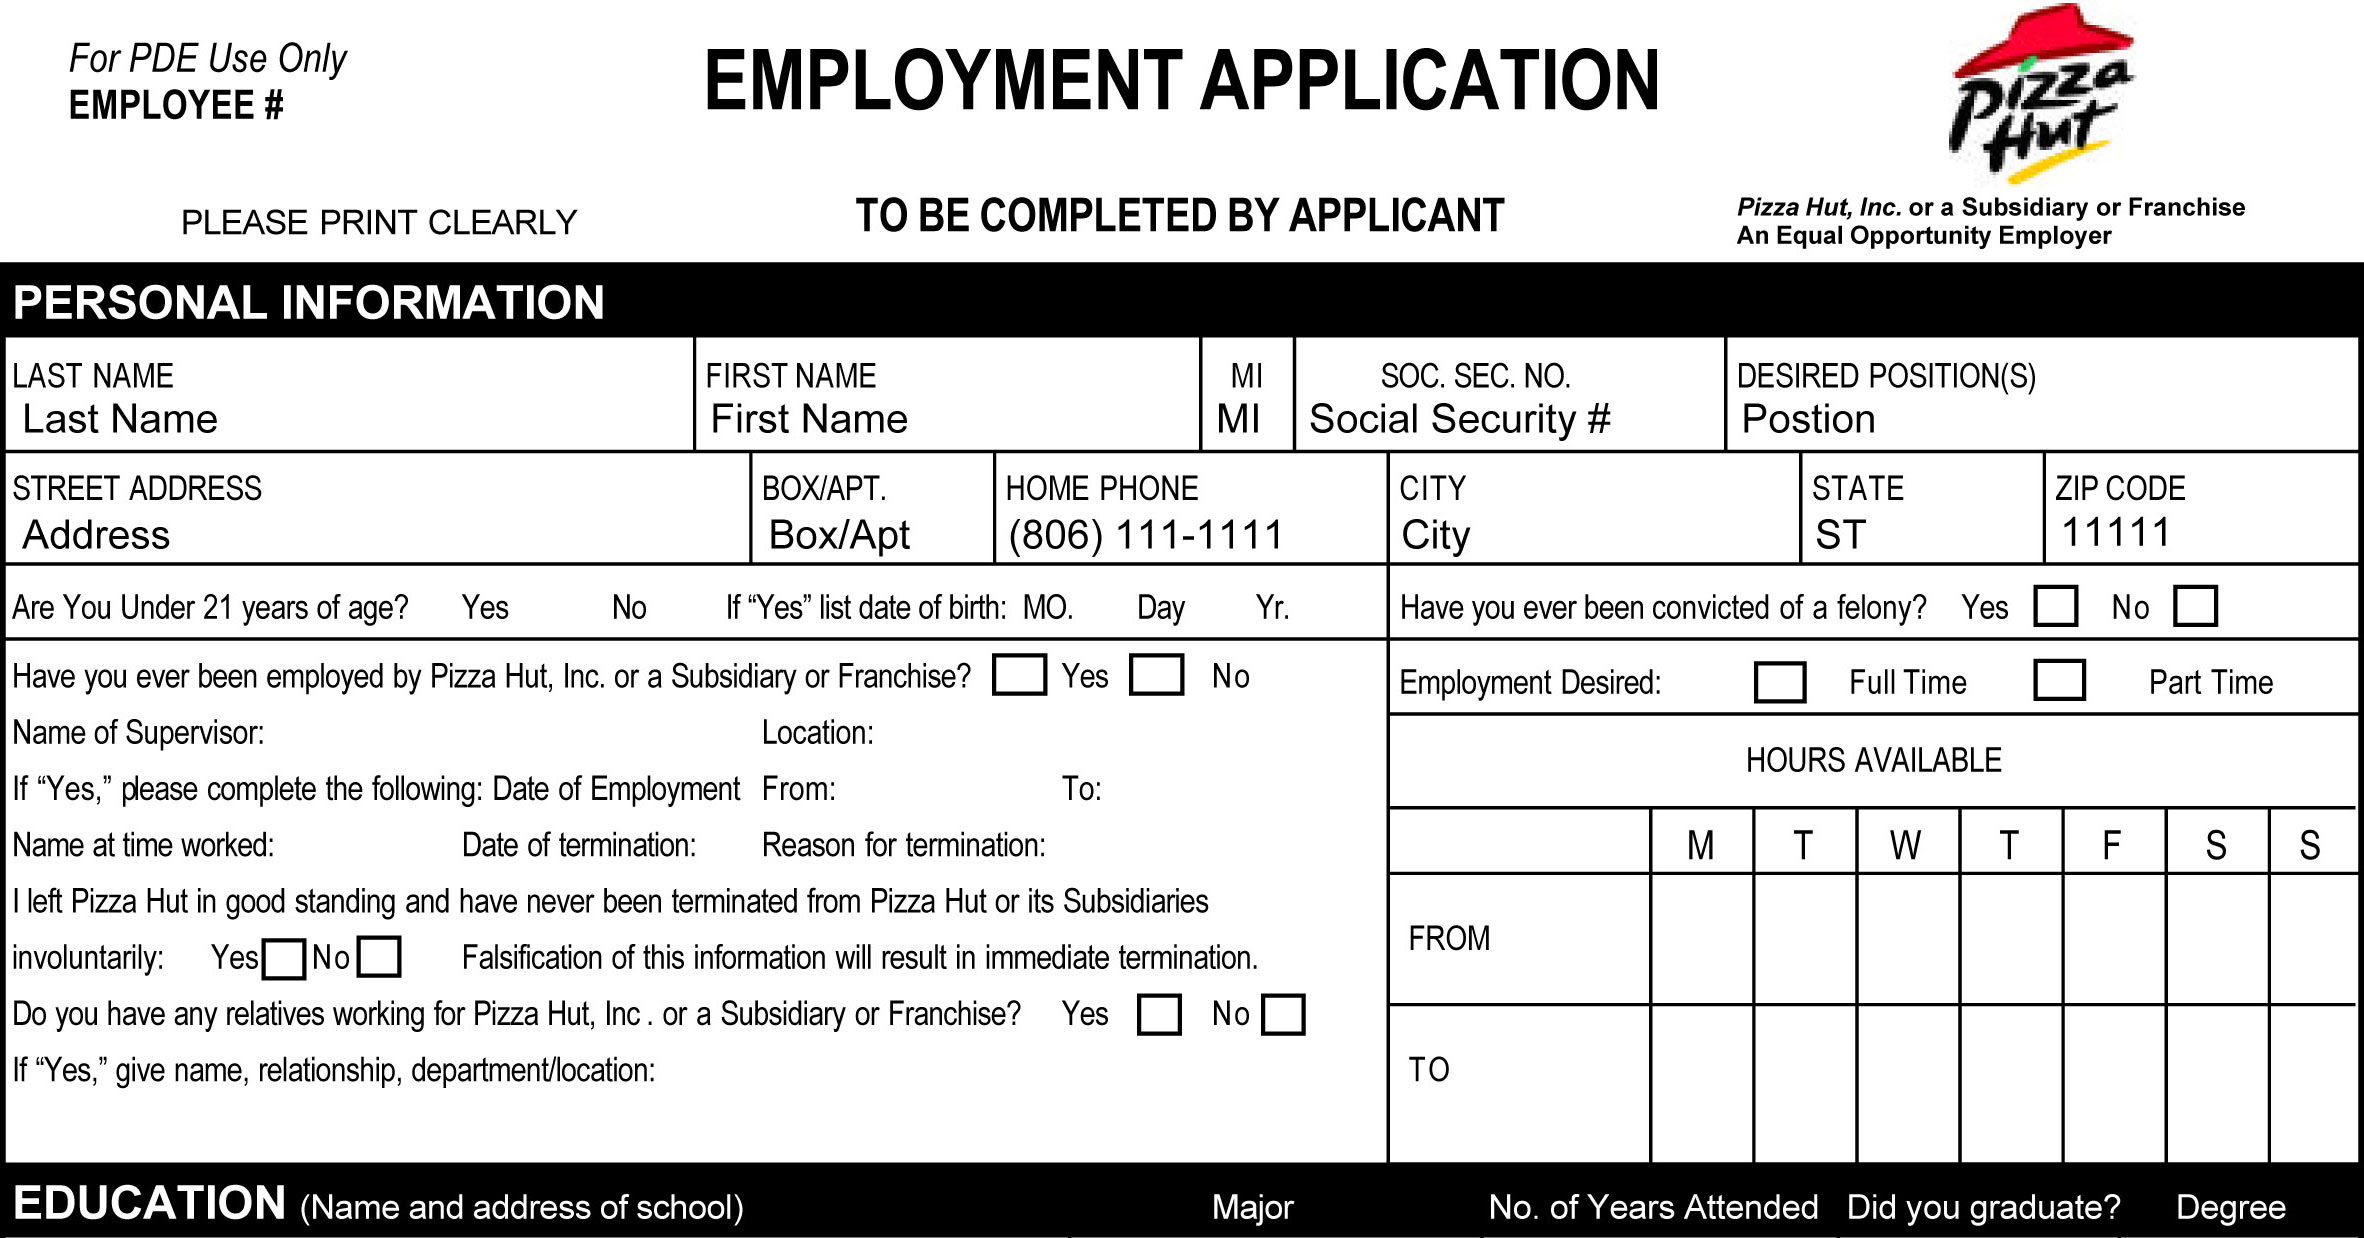 Job Application Forms To Print Taco Bell on heb online application form, taco bell shift leader duties, little caesars application form, taco bell training, taco bell job careers, taco bell apply now, printable goodwill application form, del taco job application form, taco bell job resume, stop and shop application form, taco bell application print, taco bell printable application, taco bell restaurant applications, taco bell job description, taco bell mission statement, taco bell paper application, taco bell online application form, taco bell contact, taco bell hiring, taco bell job benefits,